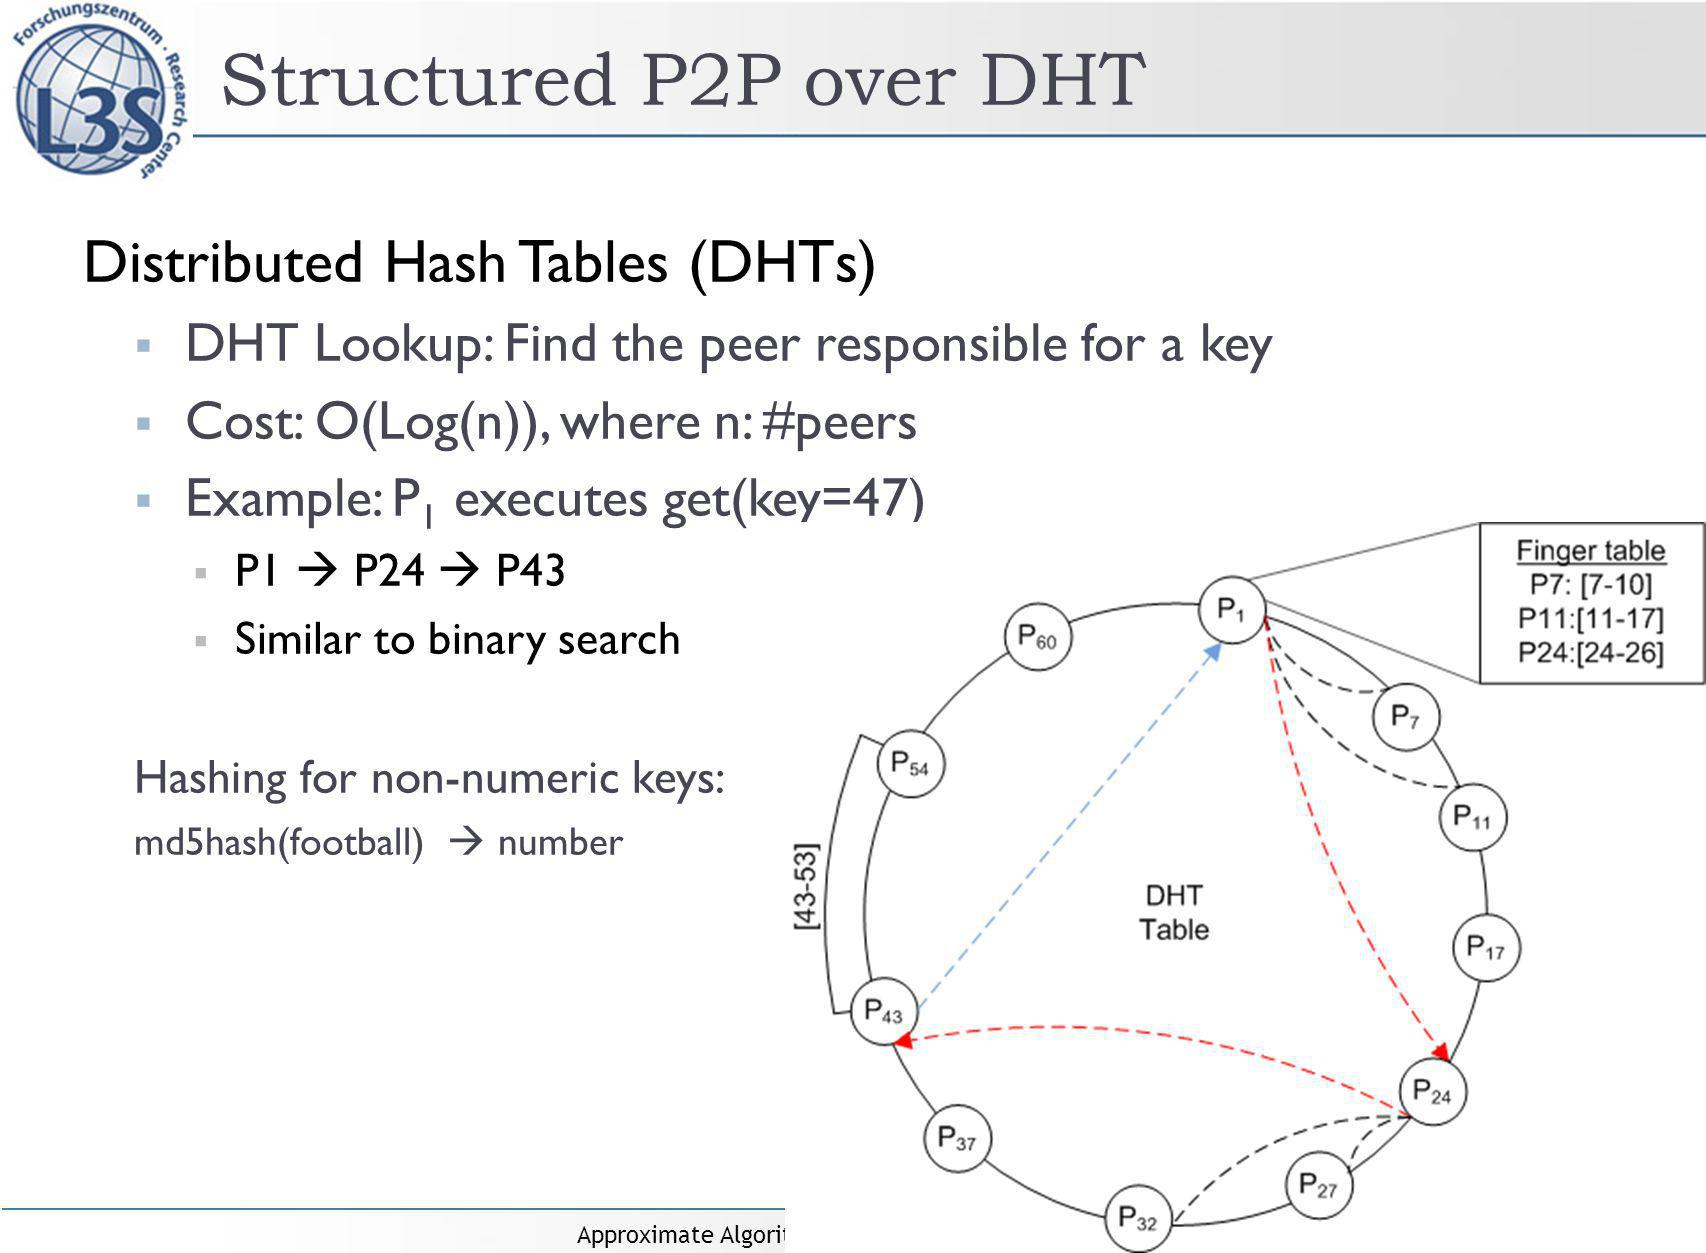 Approximate Algorithms for Efficient Indexing, Clustering, and Classification in P2P networks52 Distributed Hash Tables (DHTs) DHT Lookup: Find the peer responsible for a key Cost: O(Log(n)), where n: #peers Example: P 1 executes get(key=47) P1 P24 P43 Similar to binary search Hashing for non-numeric keys: md5hash(football) number Structured P2P over DHT